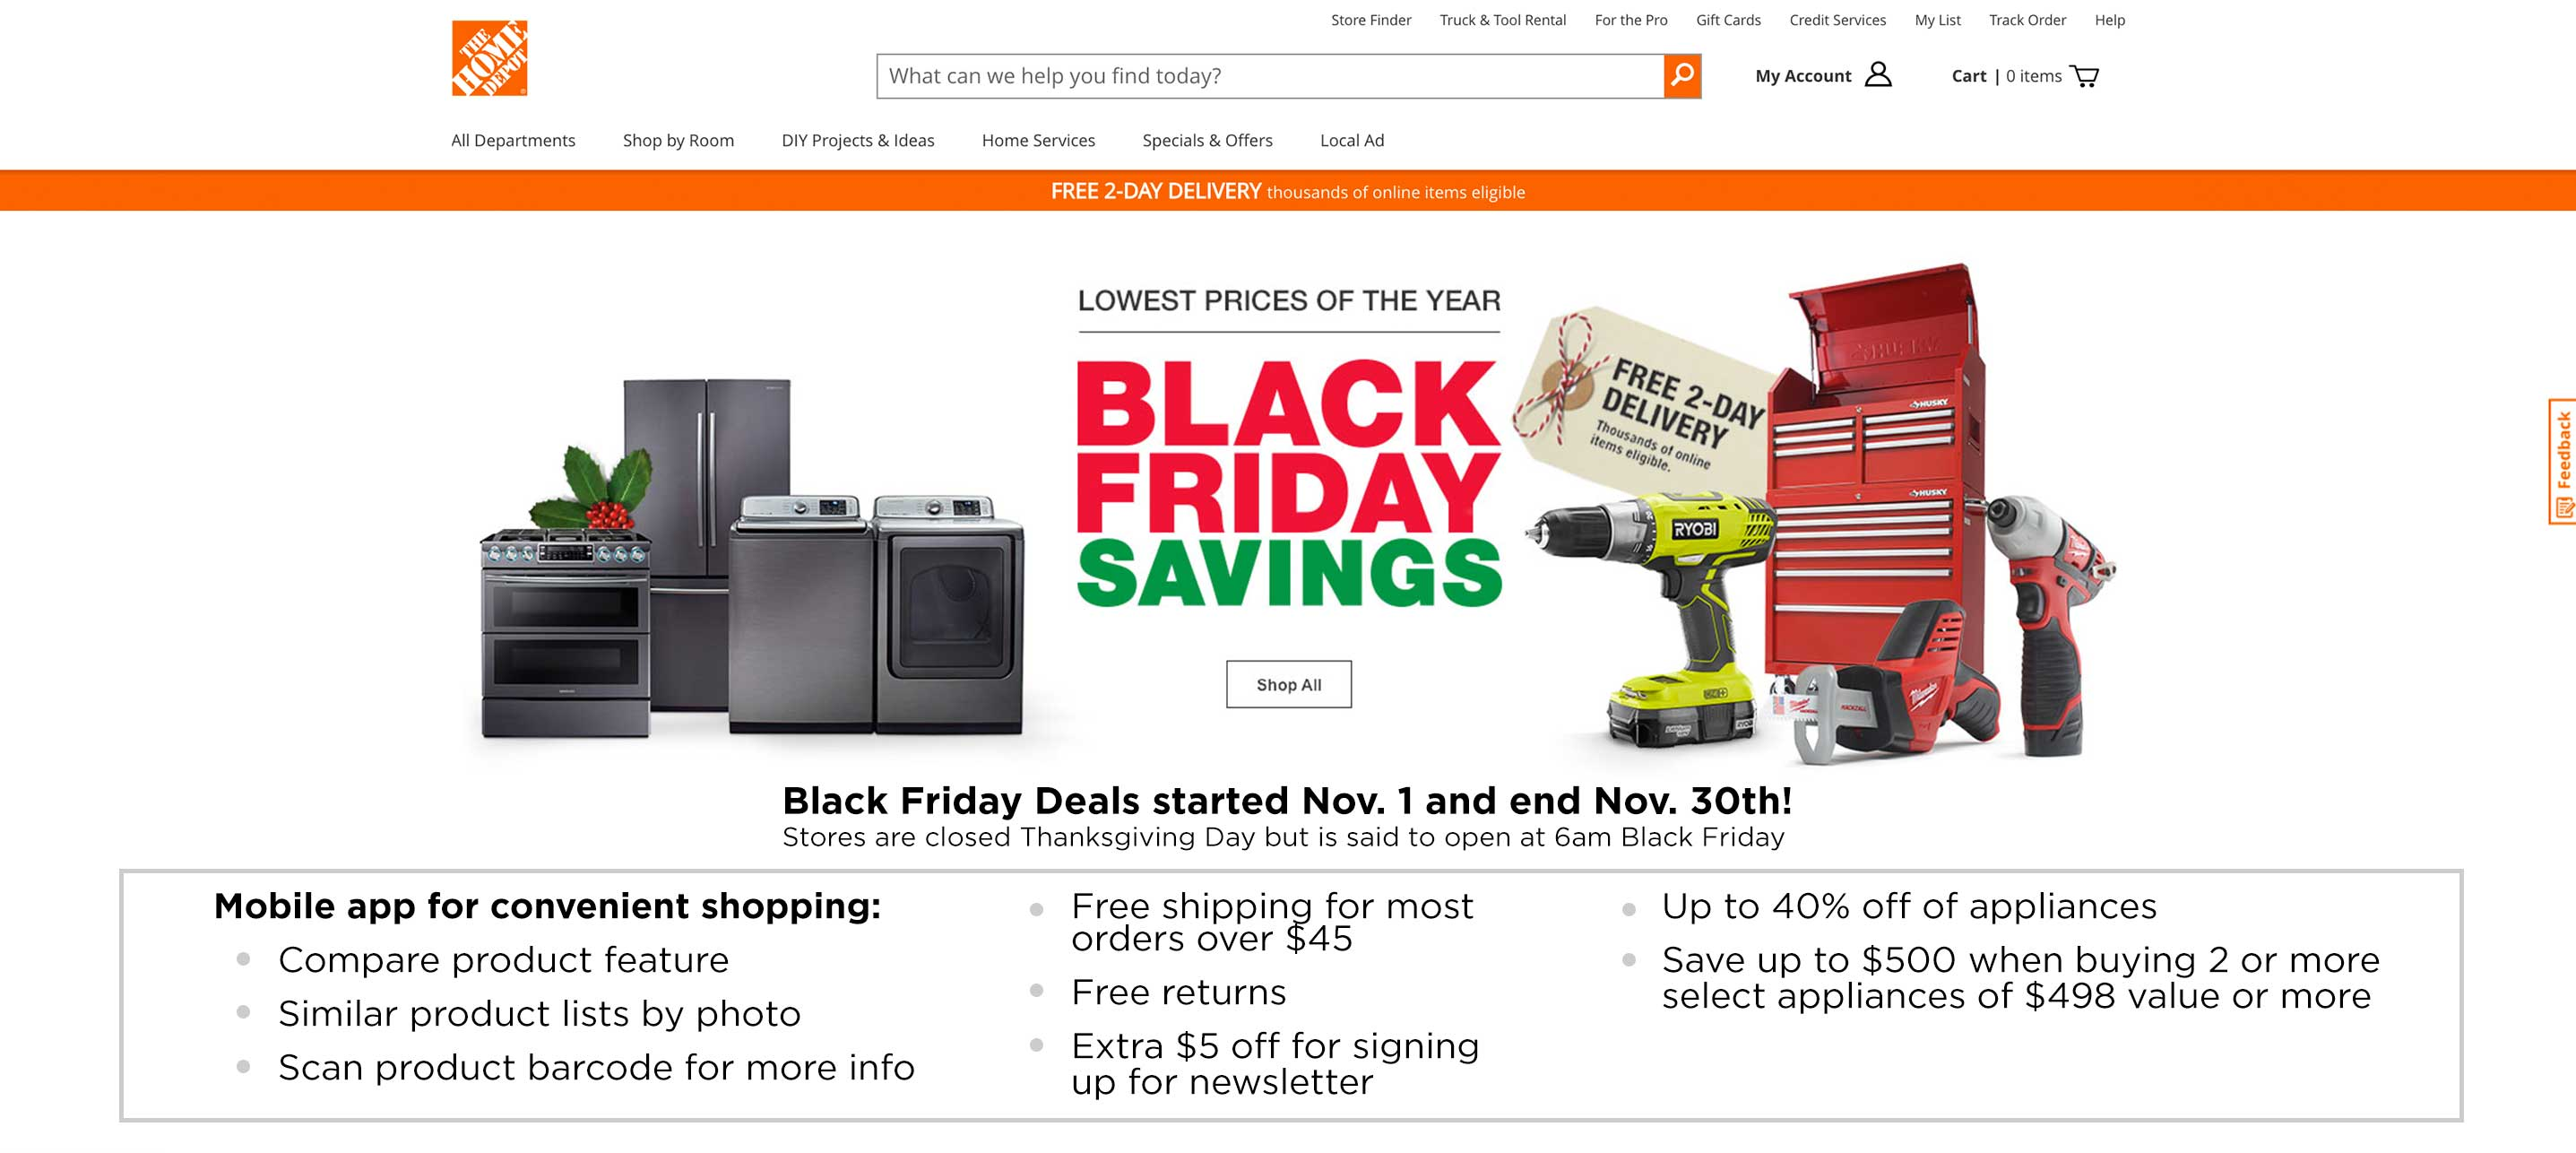 Black Friday Deals started Nov. 1 and end Nov. 30th! Up to 40% off of appliances + Save up to $500 when buying 2 or more select appliances of $498 value or more Stores are closed Thanksgiving Day but is said to open at 6am Black Friday Mobile app for convenient shopping: Compare product feature Similar product lists by photo Scan product barcode for more info Free shipping for most orders over $45 Free returns Extra $5 off for signing up for newsletter | blog.phmc.com